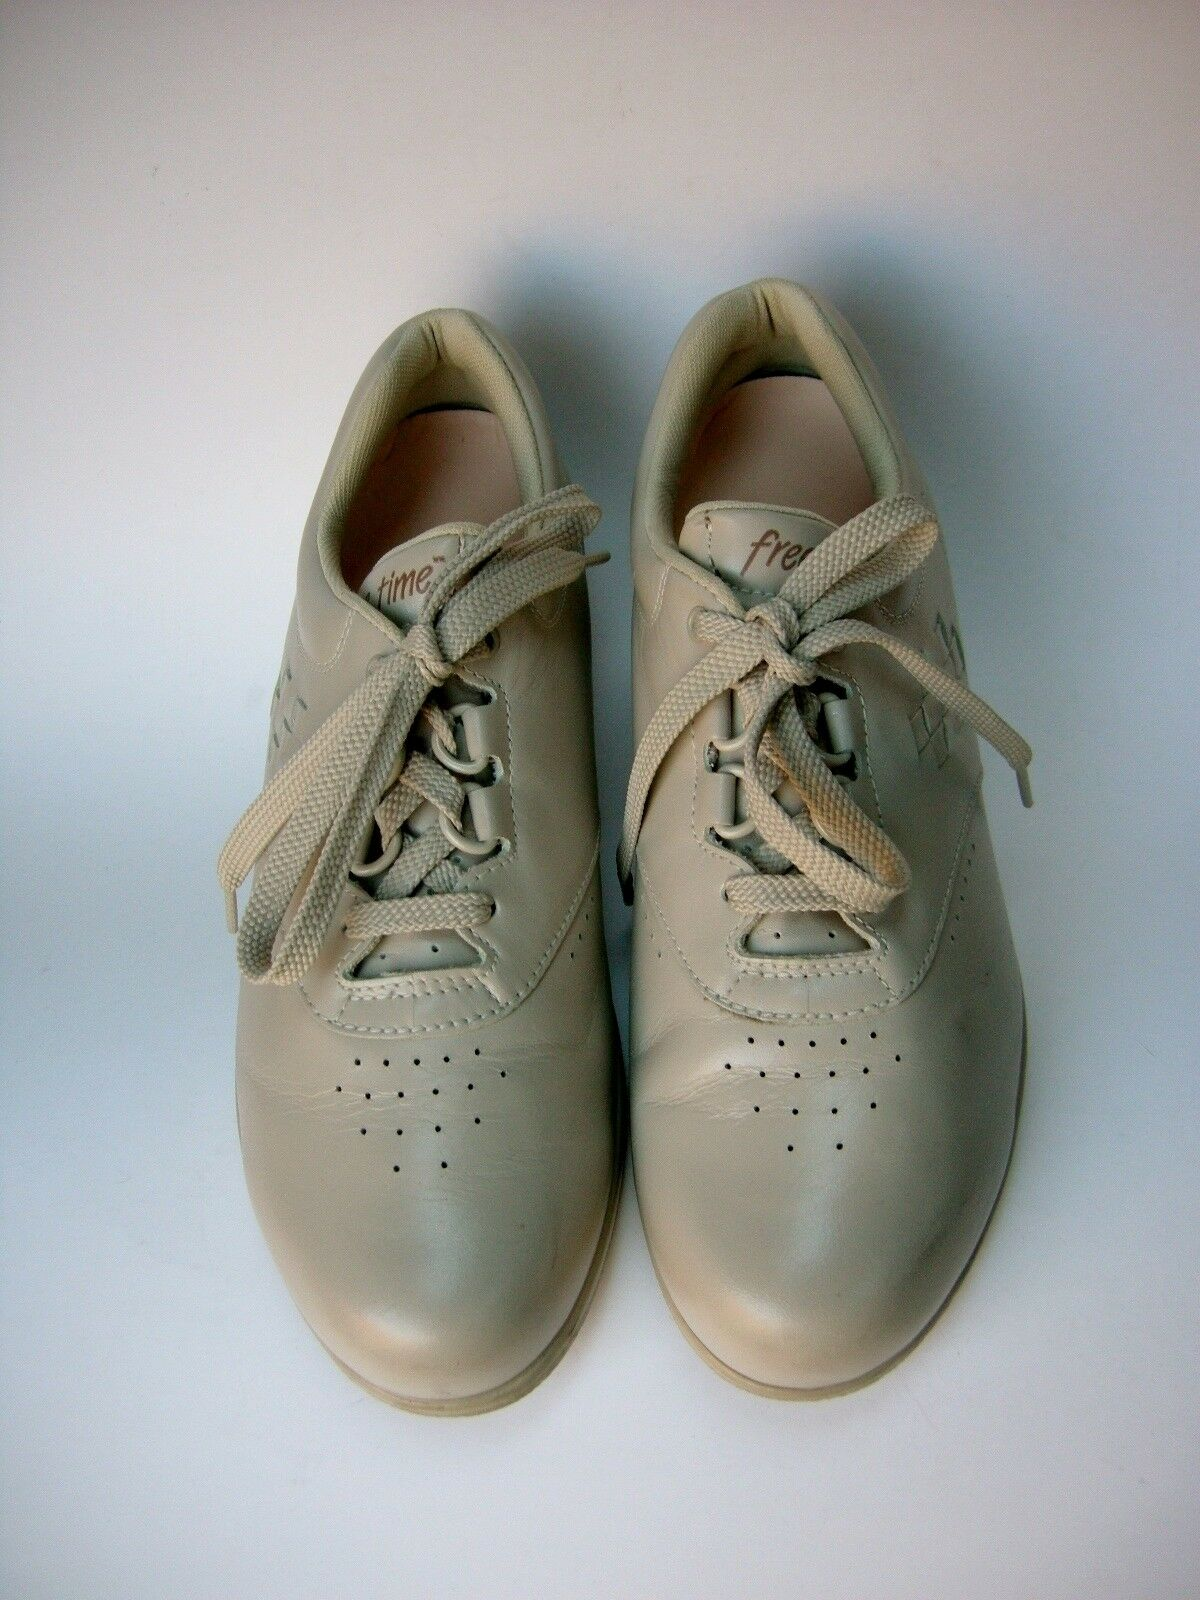 SAS Schuhes Beige Oxfords Lace Up Free Time USA Damenschuhe Gre 7.5 N